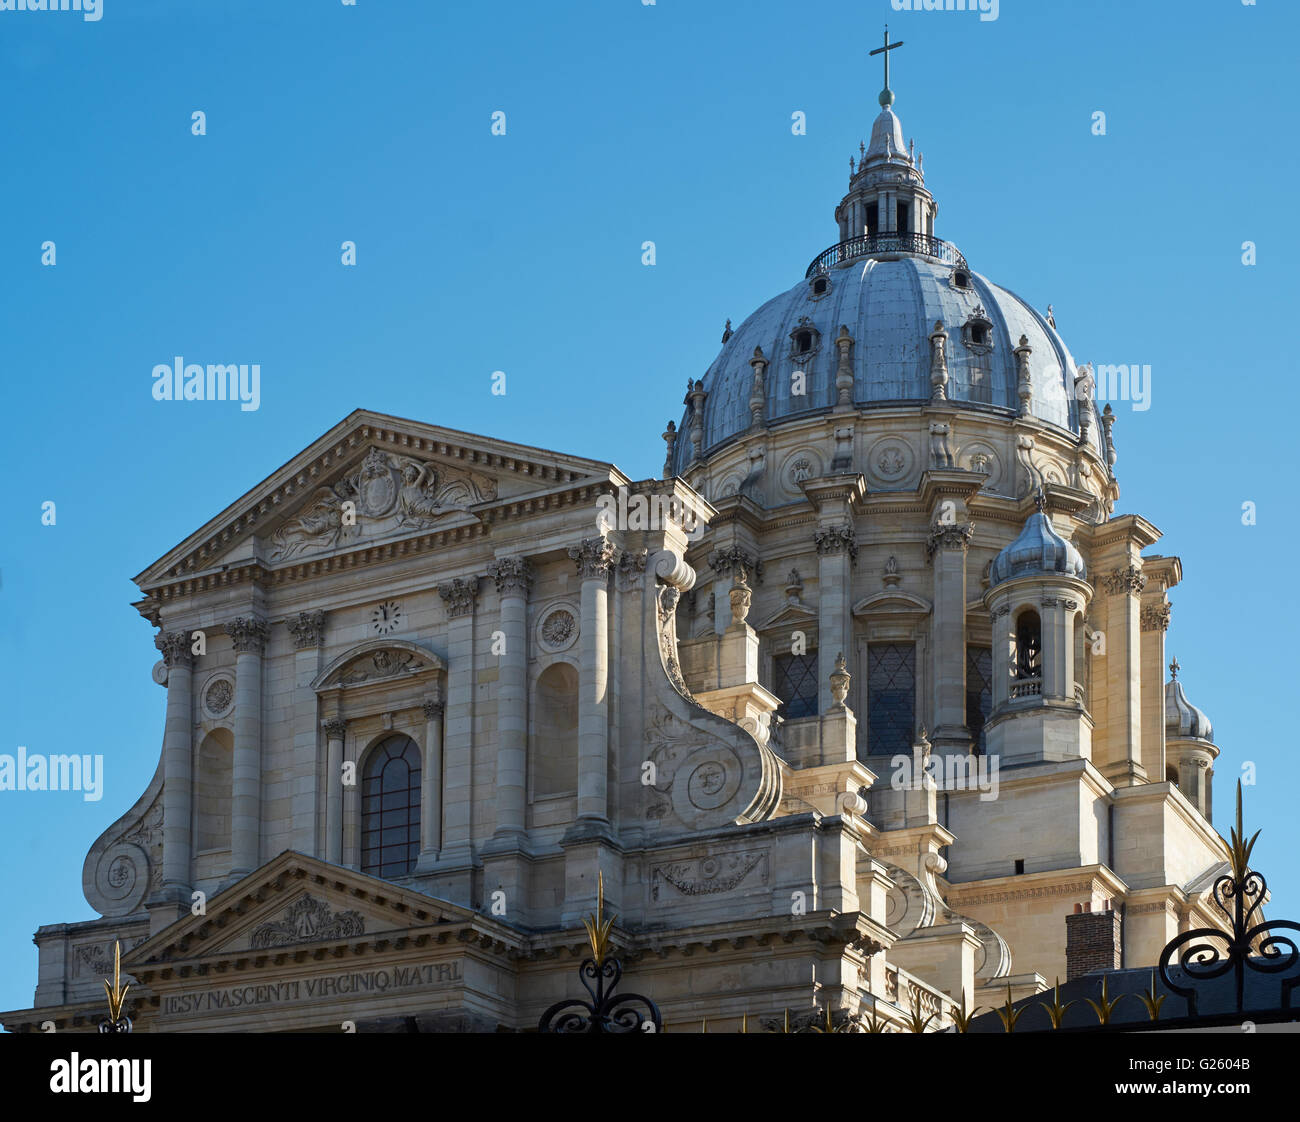 The domed church of the Val-de-Grâce in Paris, built in the 1640s. The facade was designed by François - Stock Image